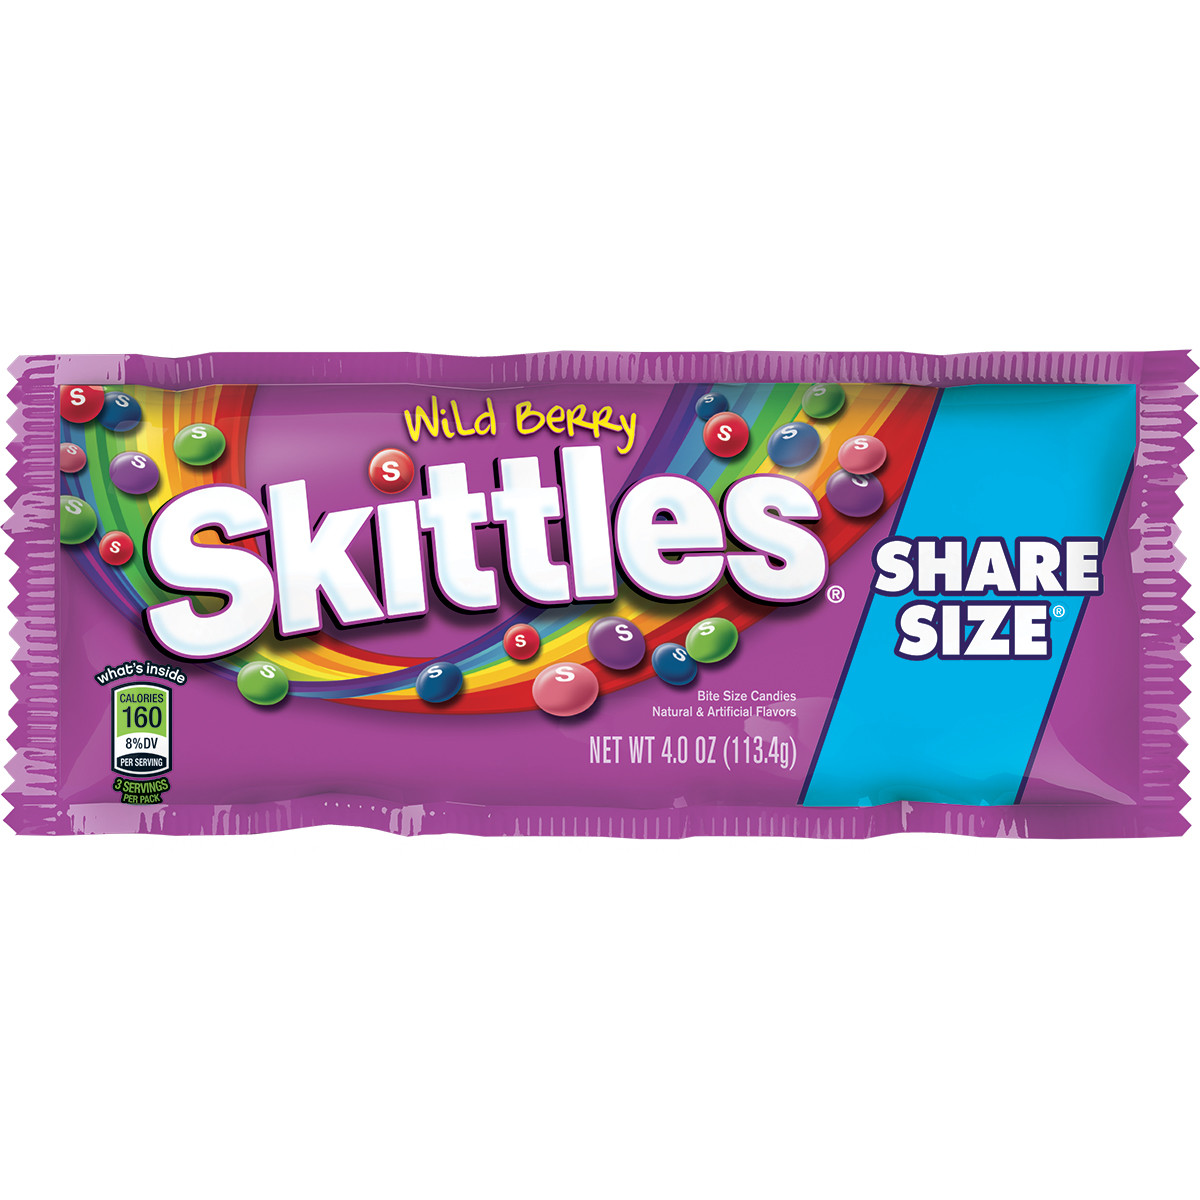 Skittles Wild Berry Candy Share Size Pack, 4 ounce